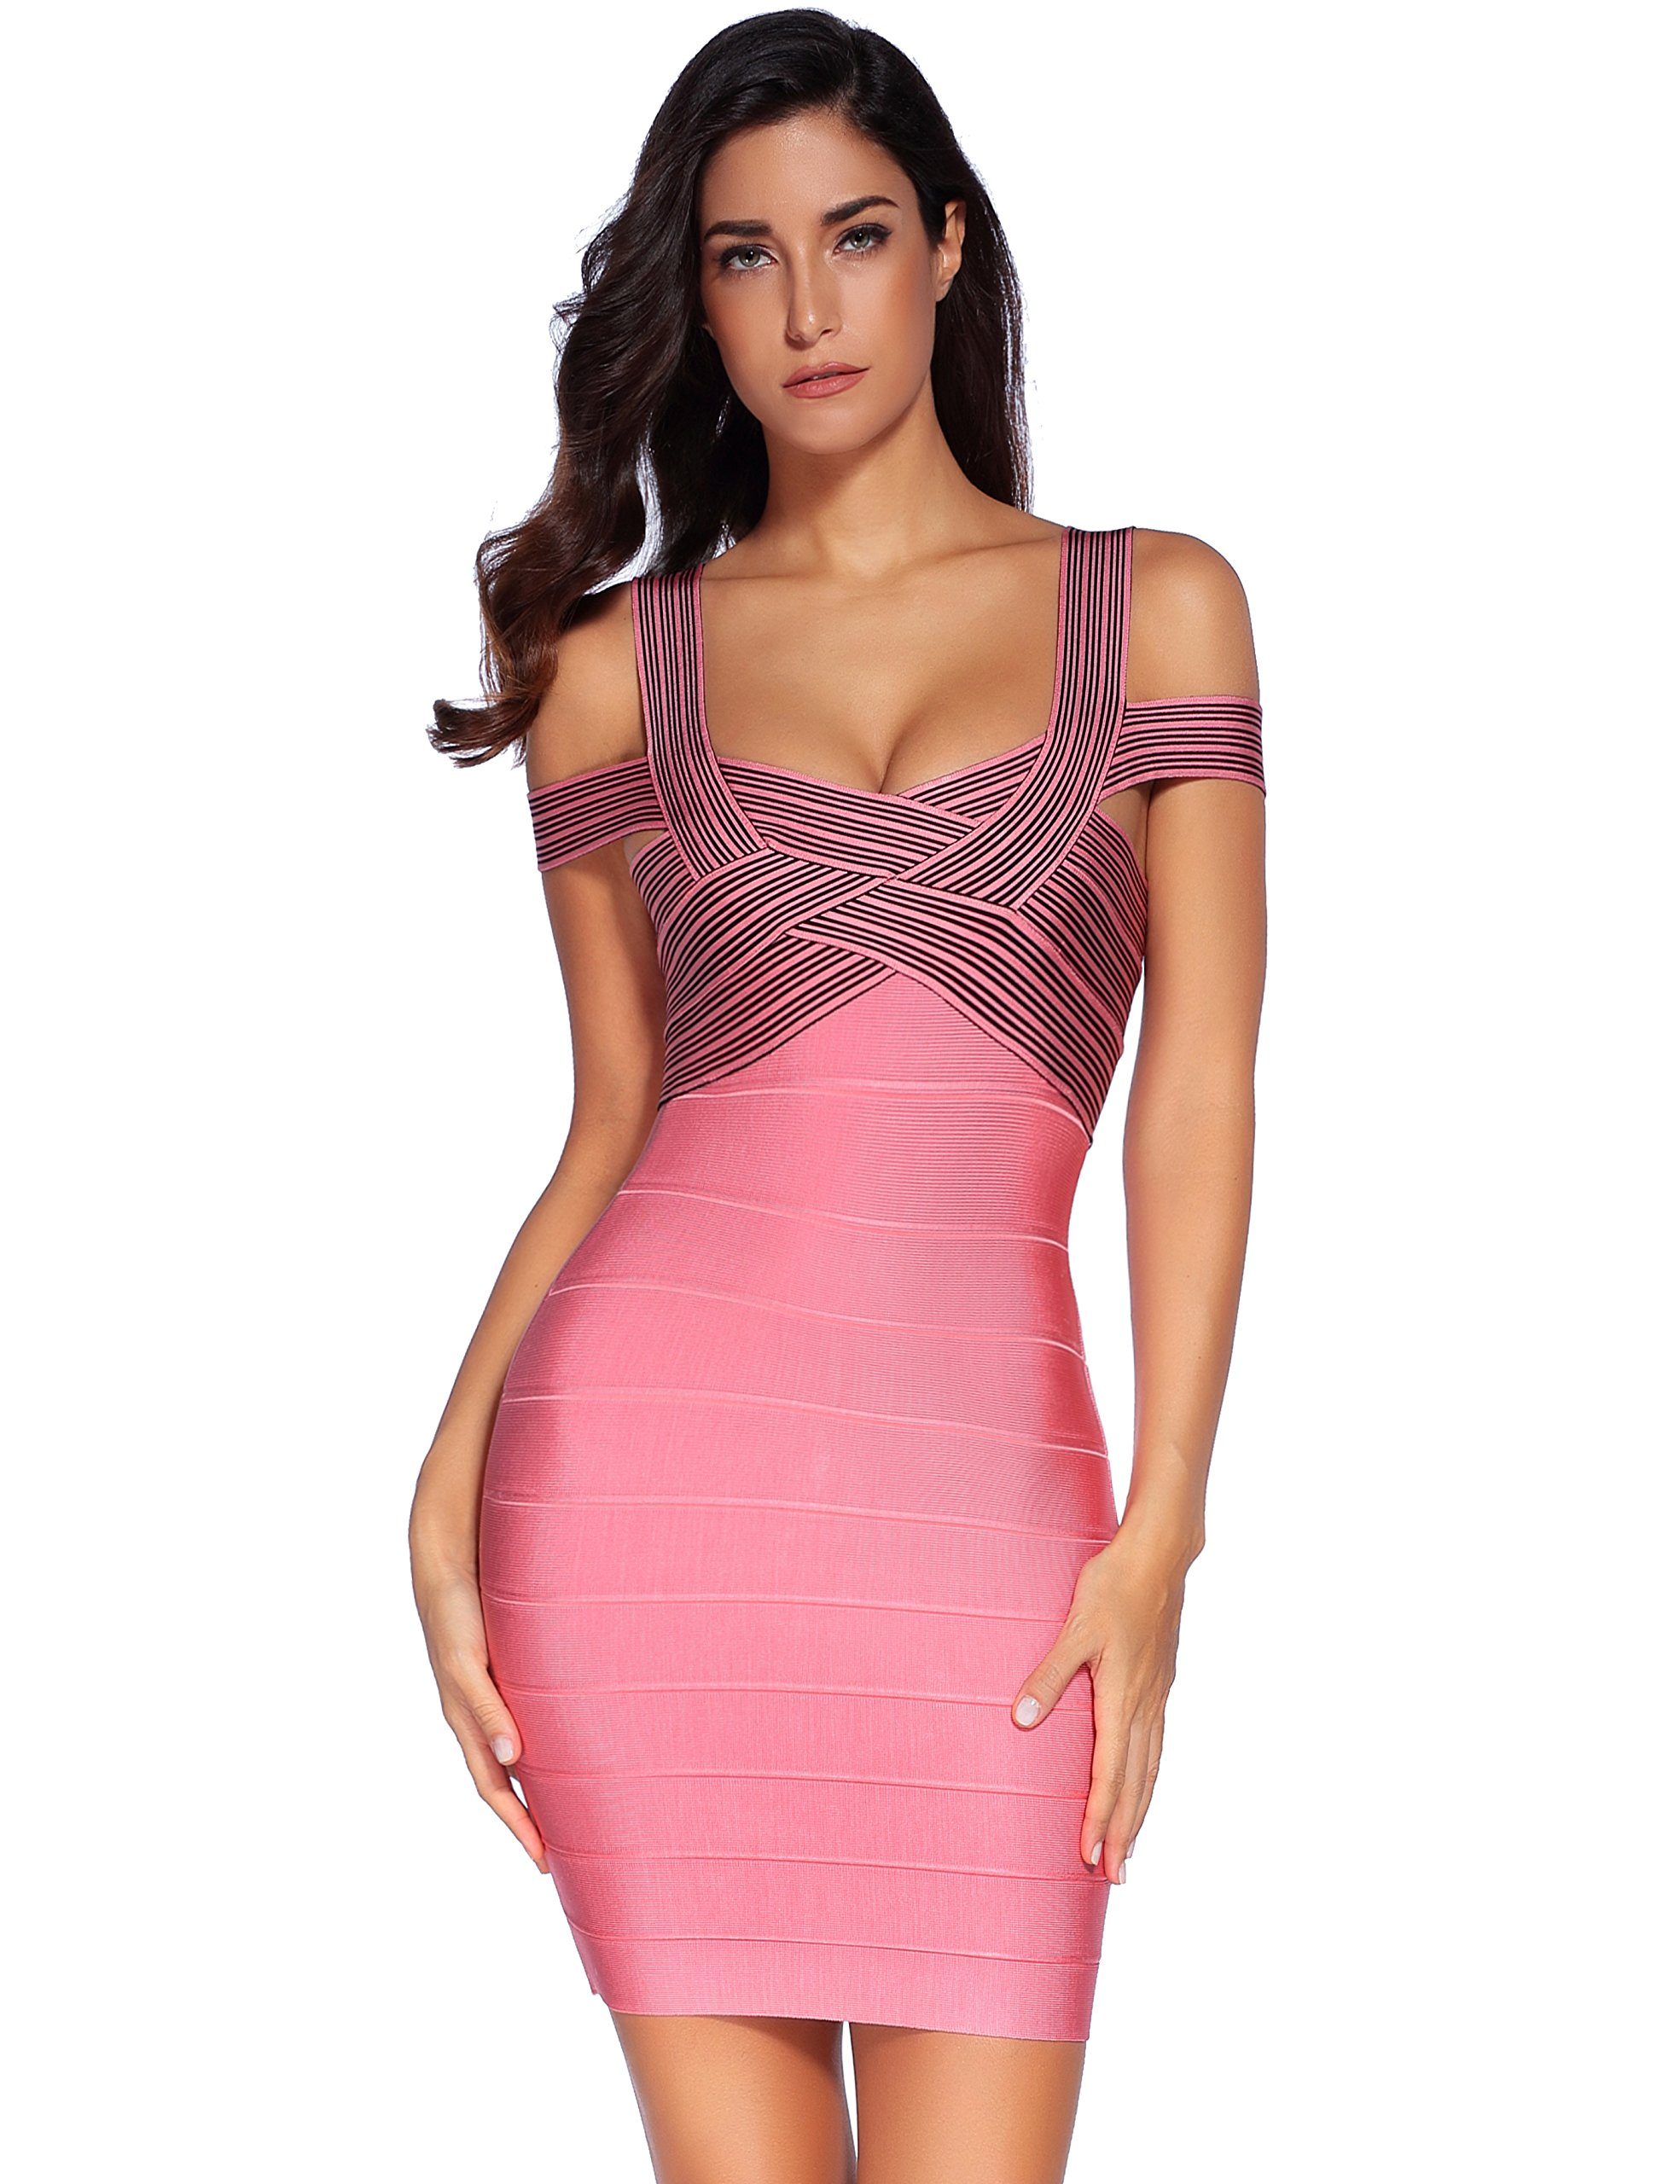 Meilun Women's Rayon Strap V-neck Off-Shoulder Fitted Bandage Bodycon Dress Pink Small